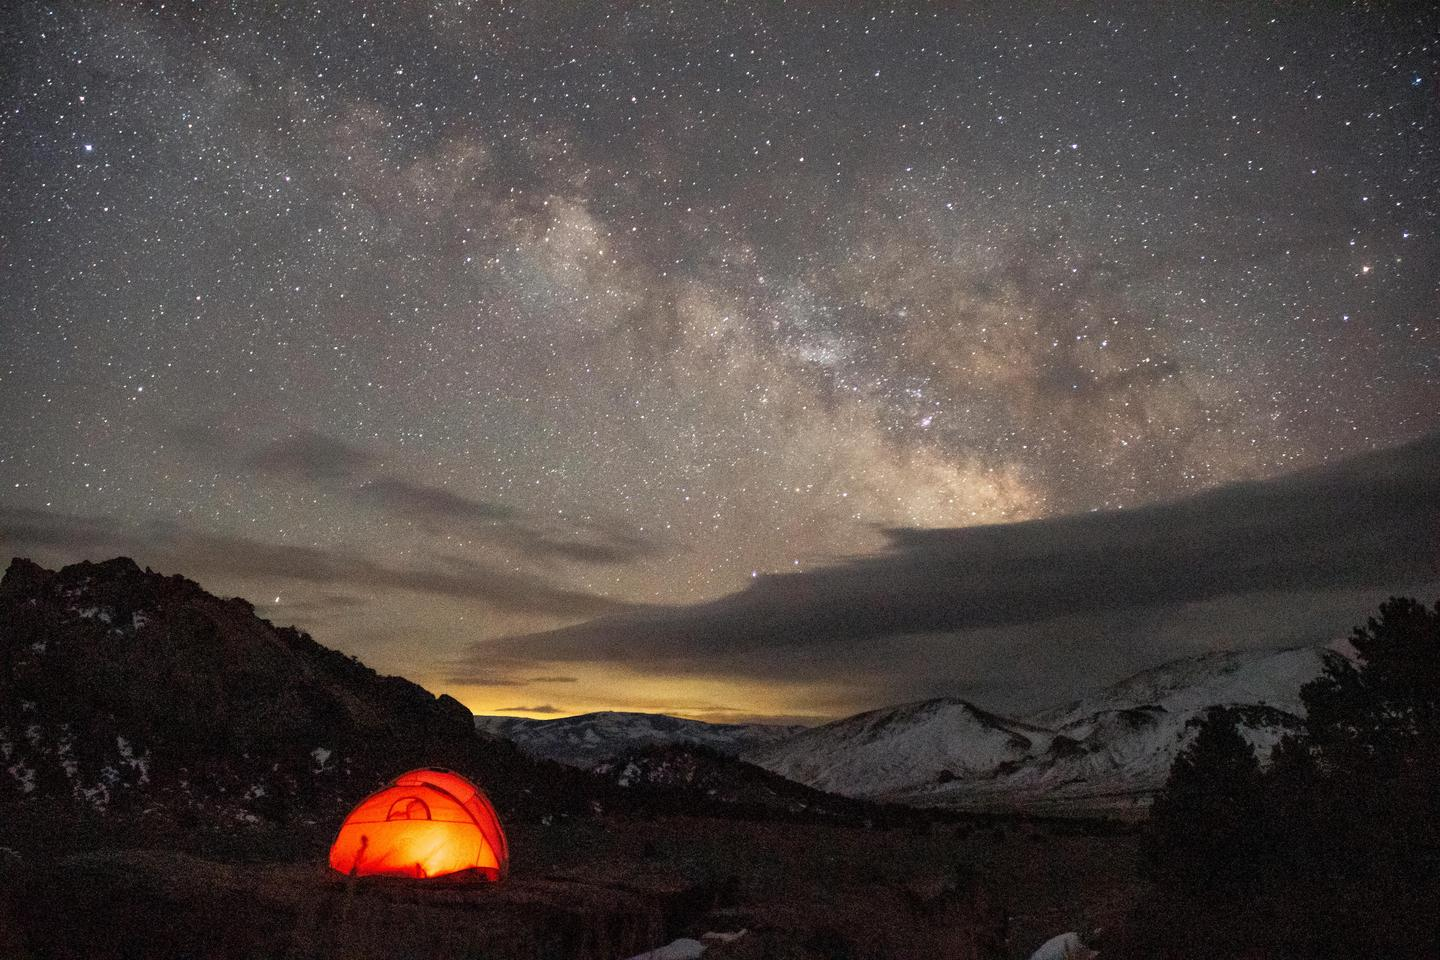 Camping Under the Milky WayThe dark skies in City of Rocks provide excellent conditions for star gazing.